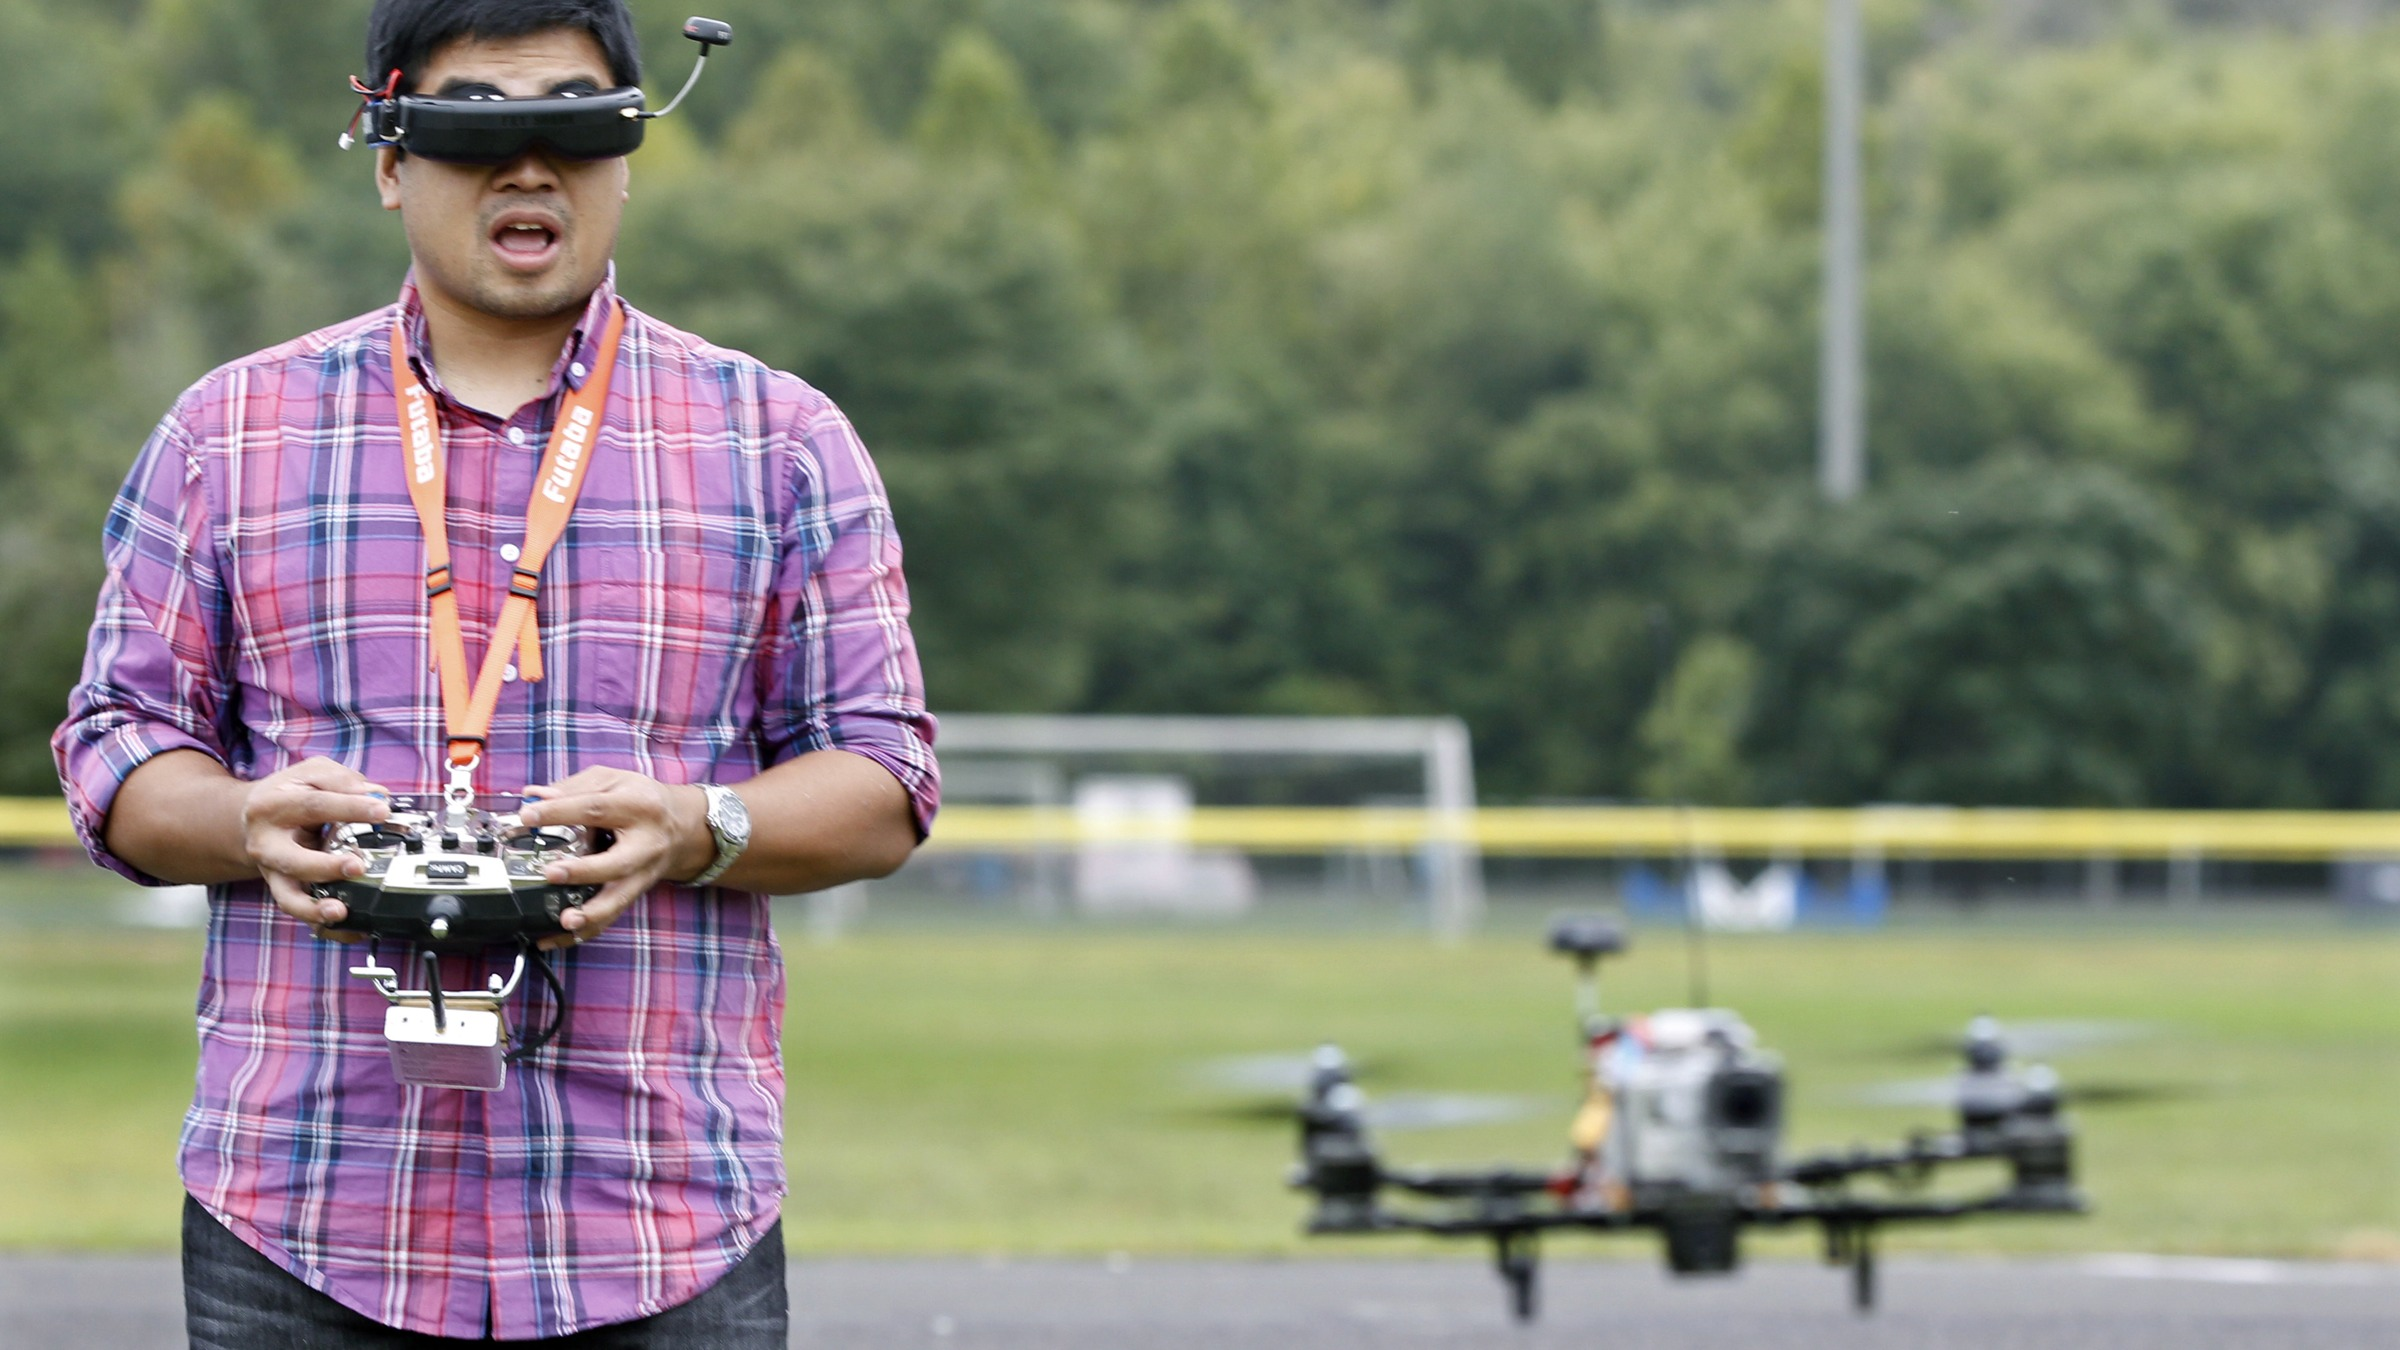 """Kevin Vertucio, of Bristol, Pa., practices flying his """"quadcopter"""" while wearing goggles connected to a camera on the craft, in Yardley, Pa., Tuesday morning, Sept. 10, 2013. Trained as an electrical engineer, Vertucio, uses the aircraft to make aerial photographs for casinos and other companies. (AP Photo/Mel Evans)"""